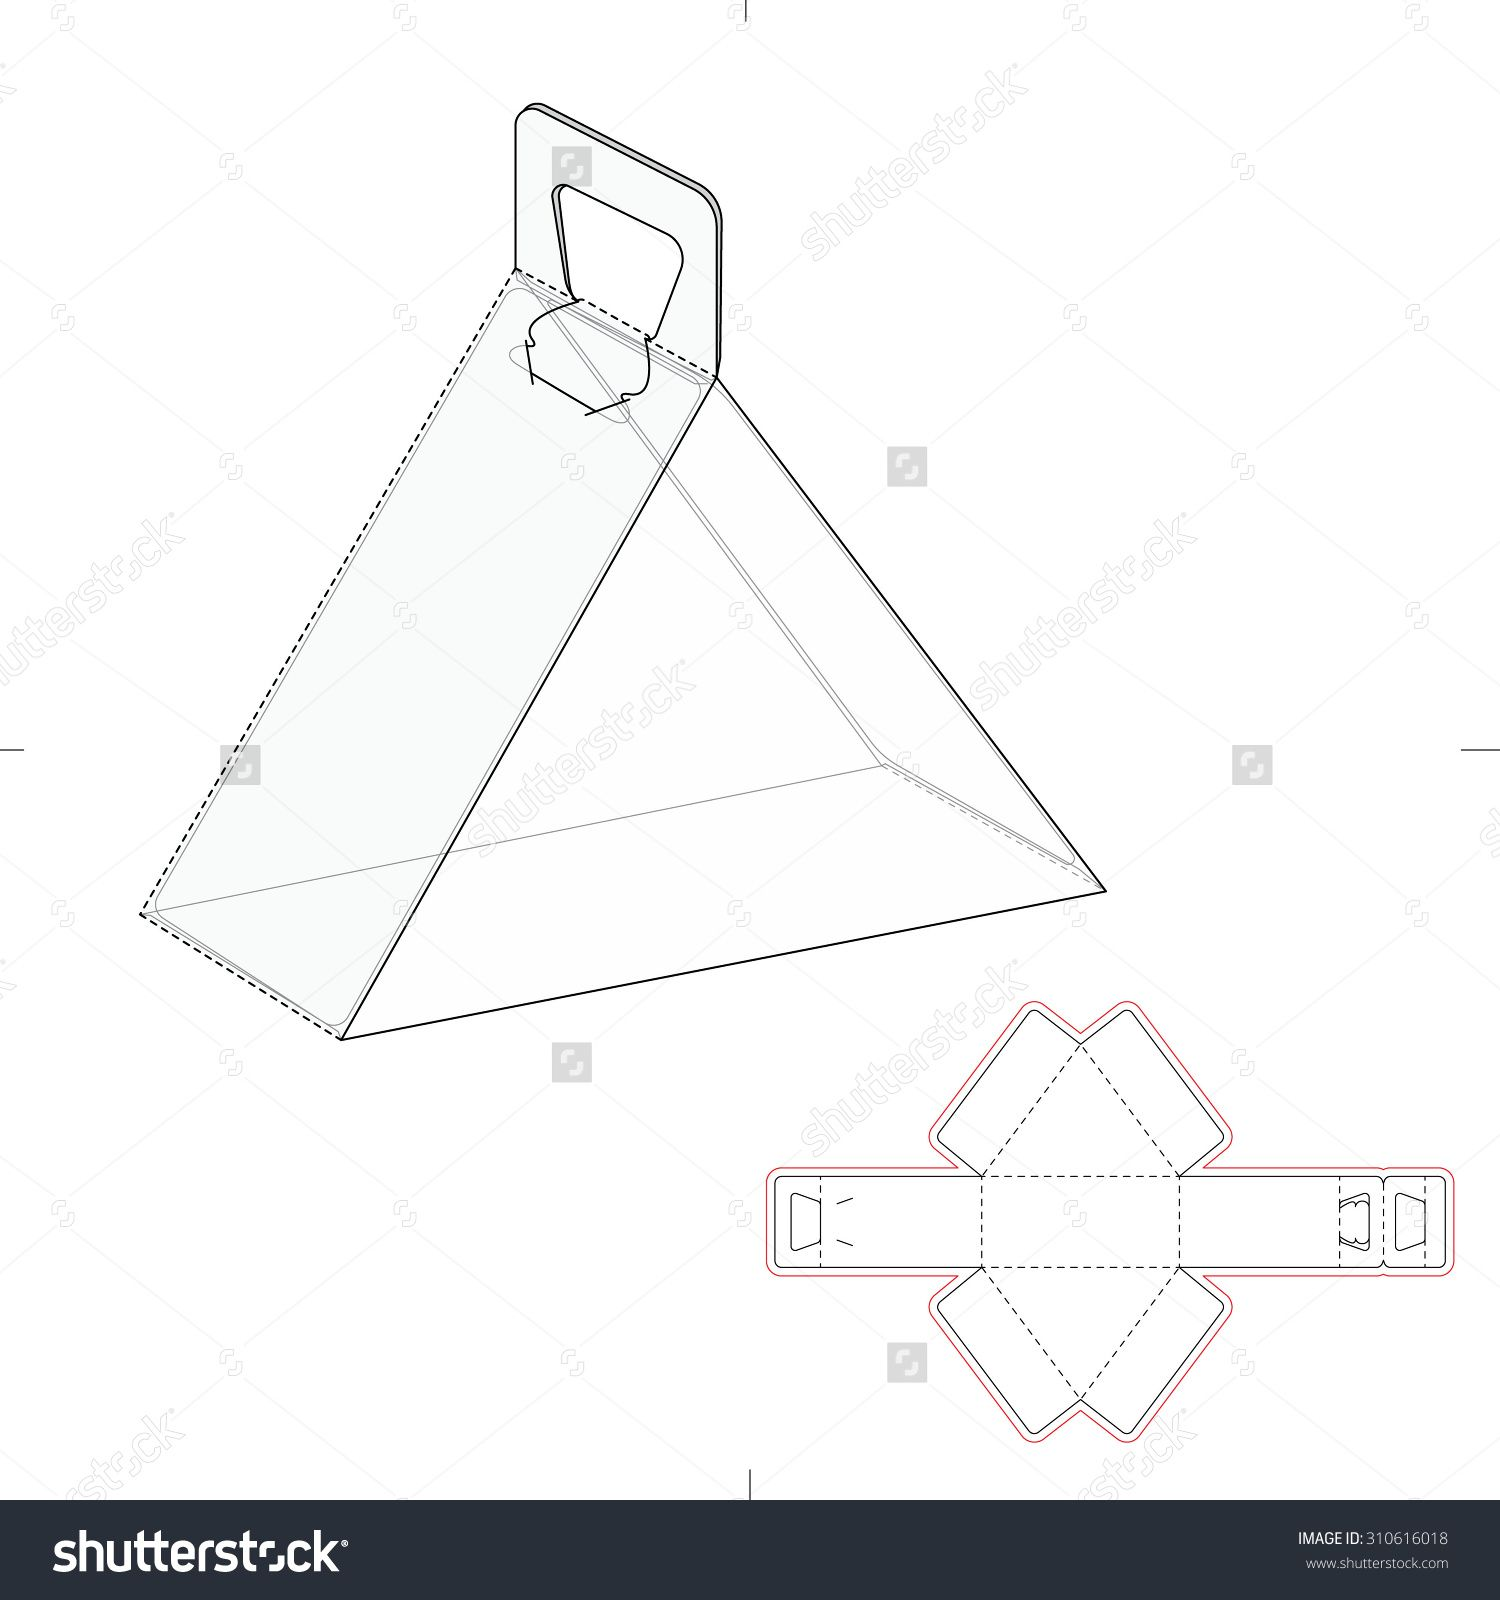 Triangular carrying box with handle and die line template stock triangular carrying box with handle and die line template stock vector illustration 310616018 shutterstock packaging maxwellsz